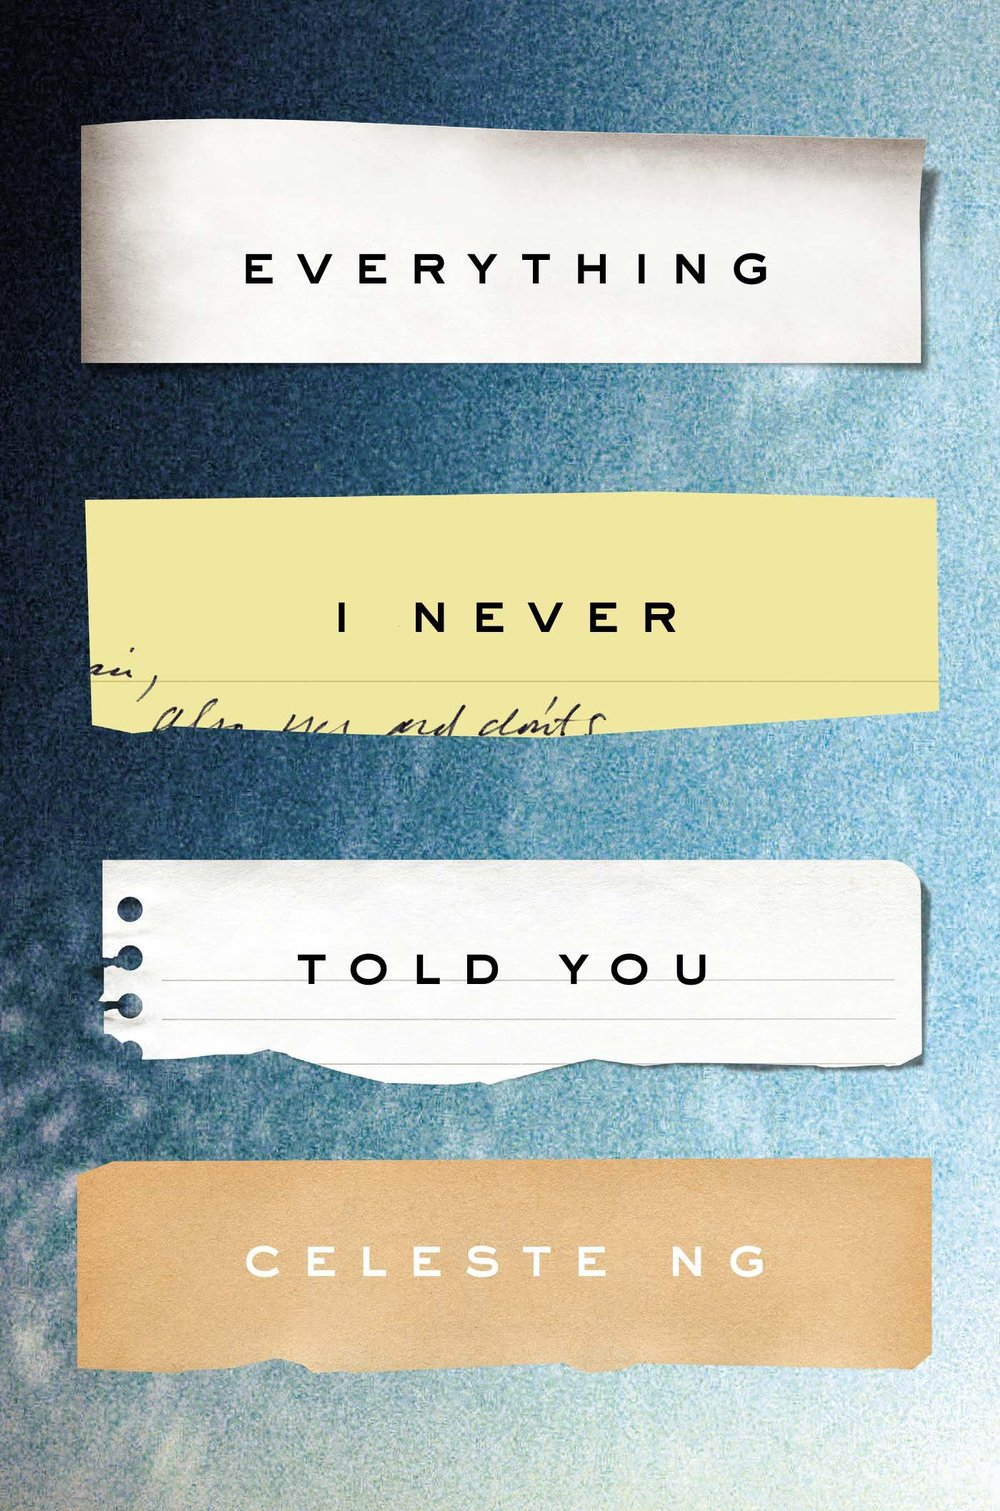 Everything I Never Told You by Celeste Ng Amazon | Goodreads